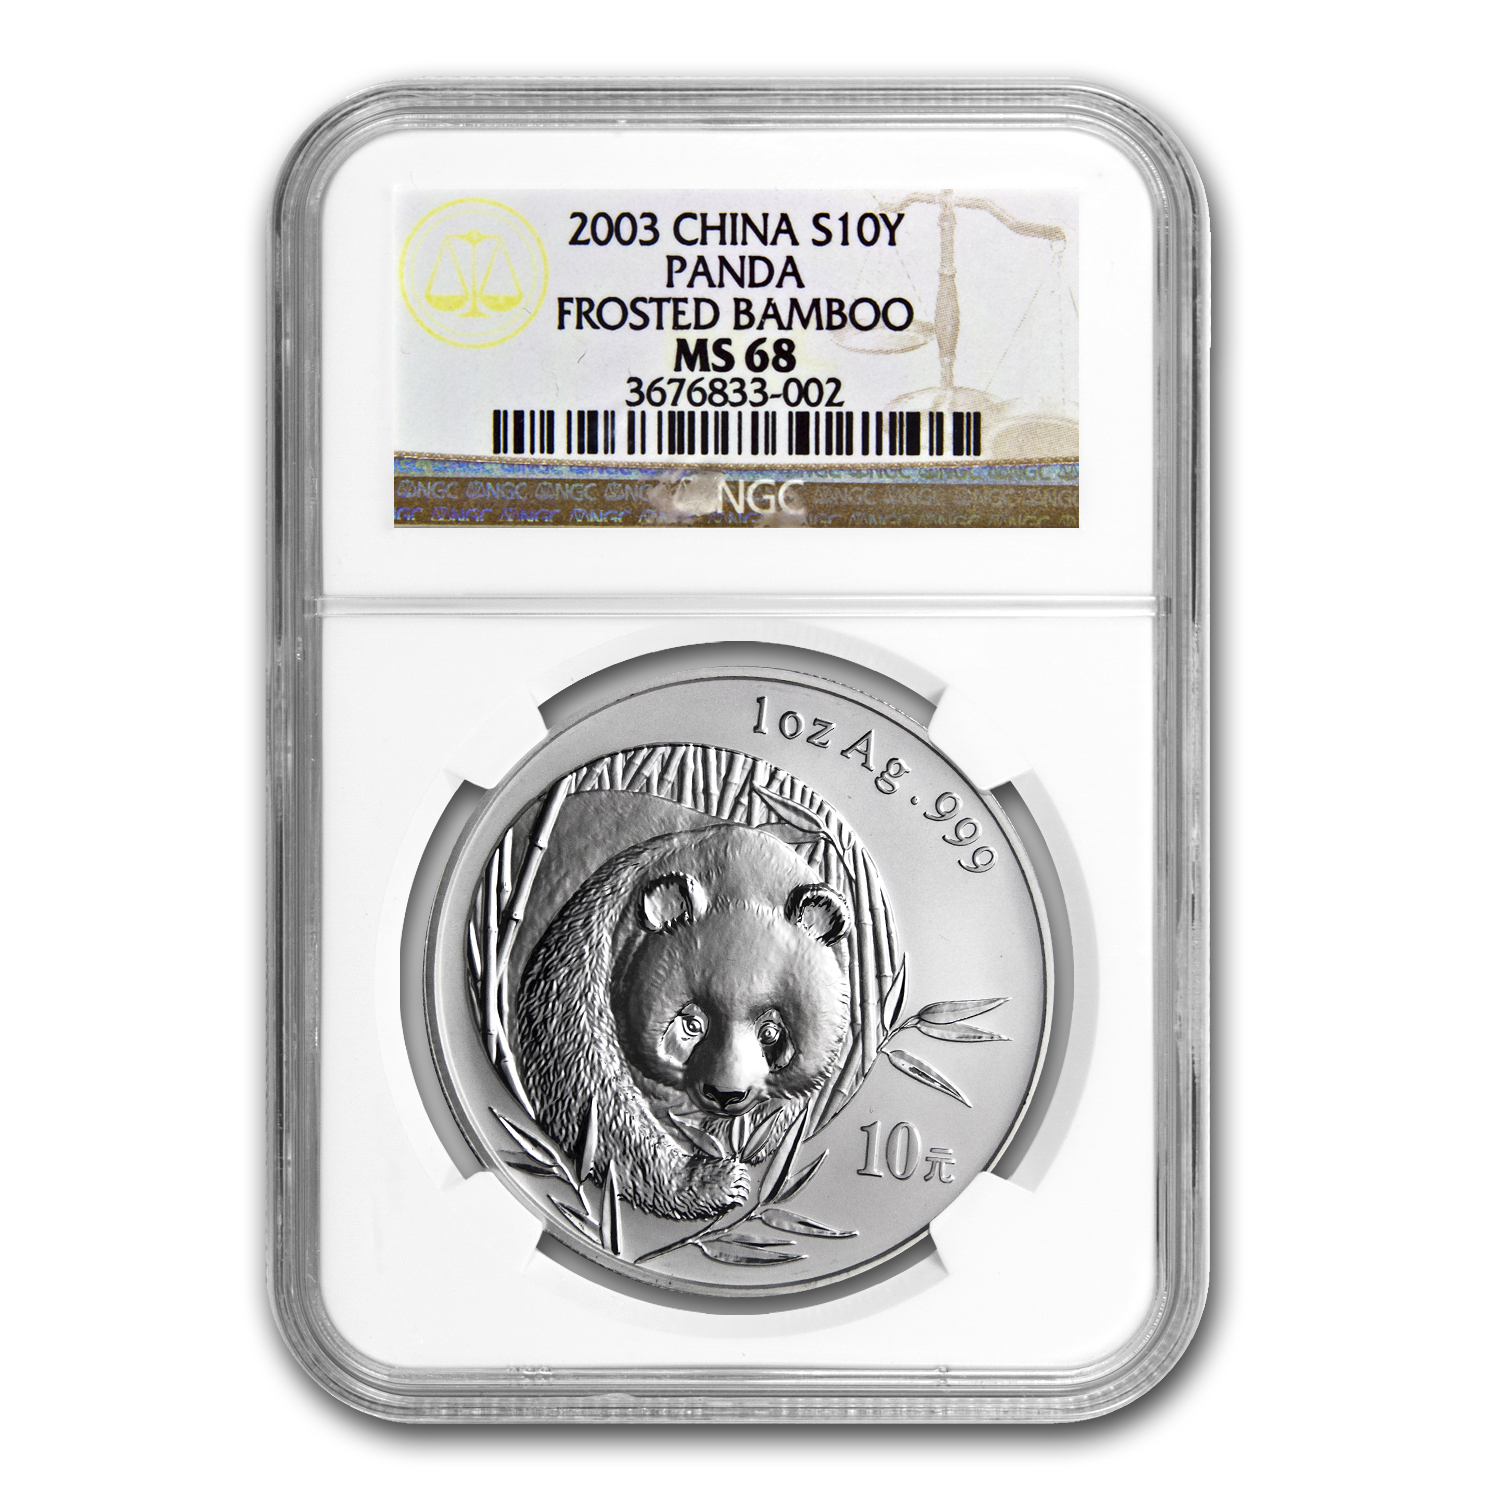 2003 China 1 oz Silver Panda MS-68 NGC (Frosted Bamboo)